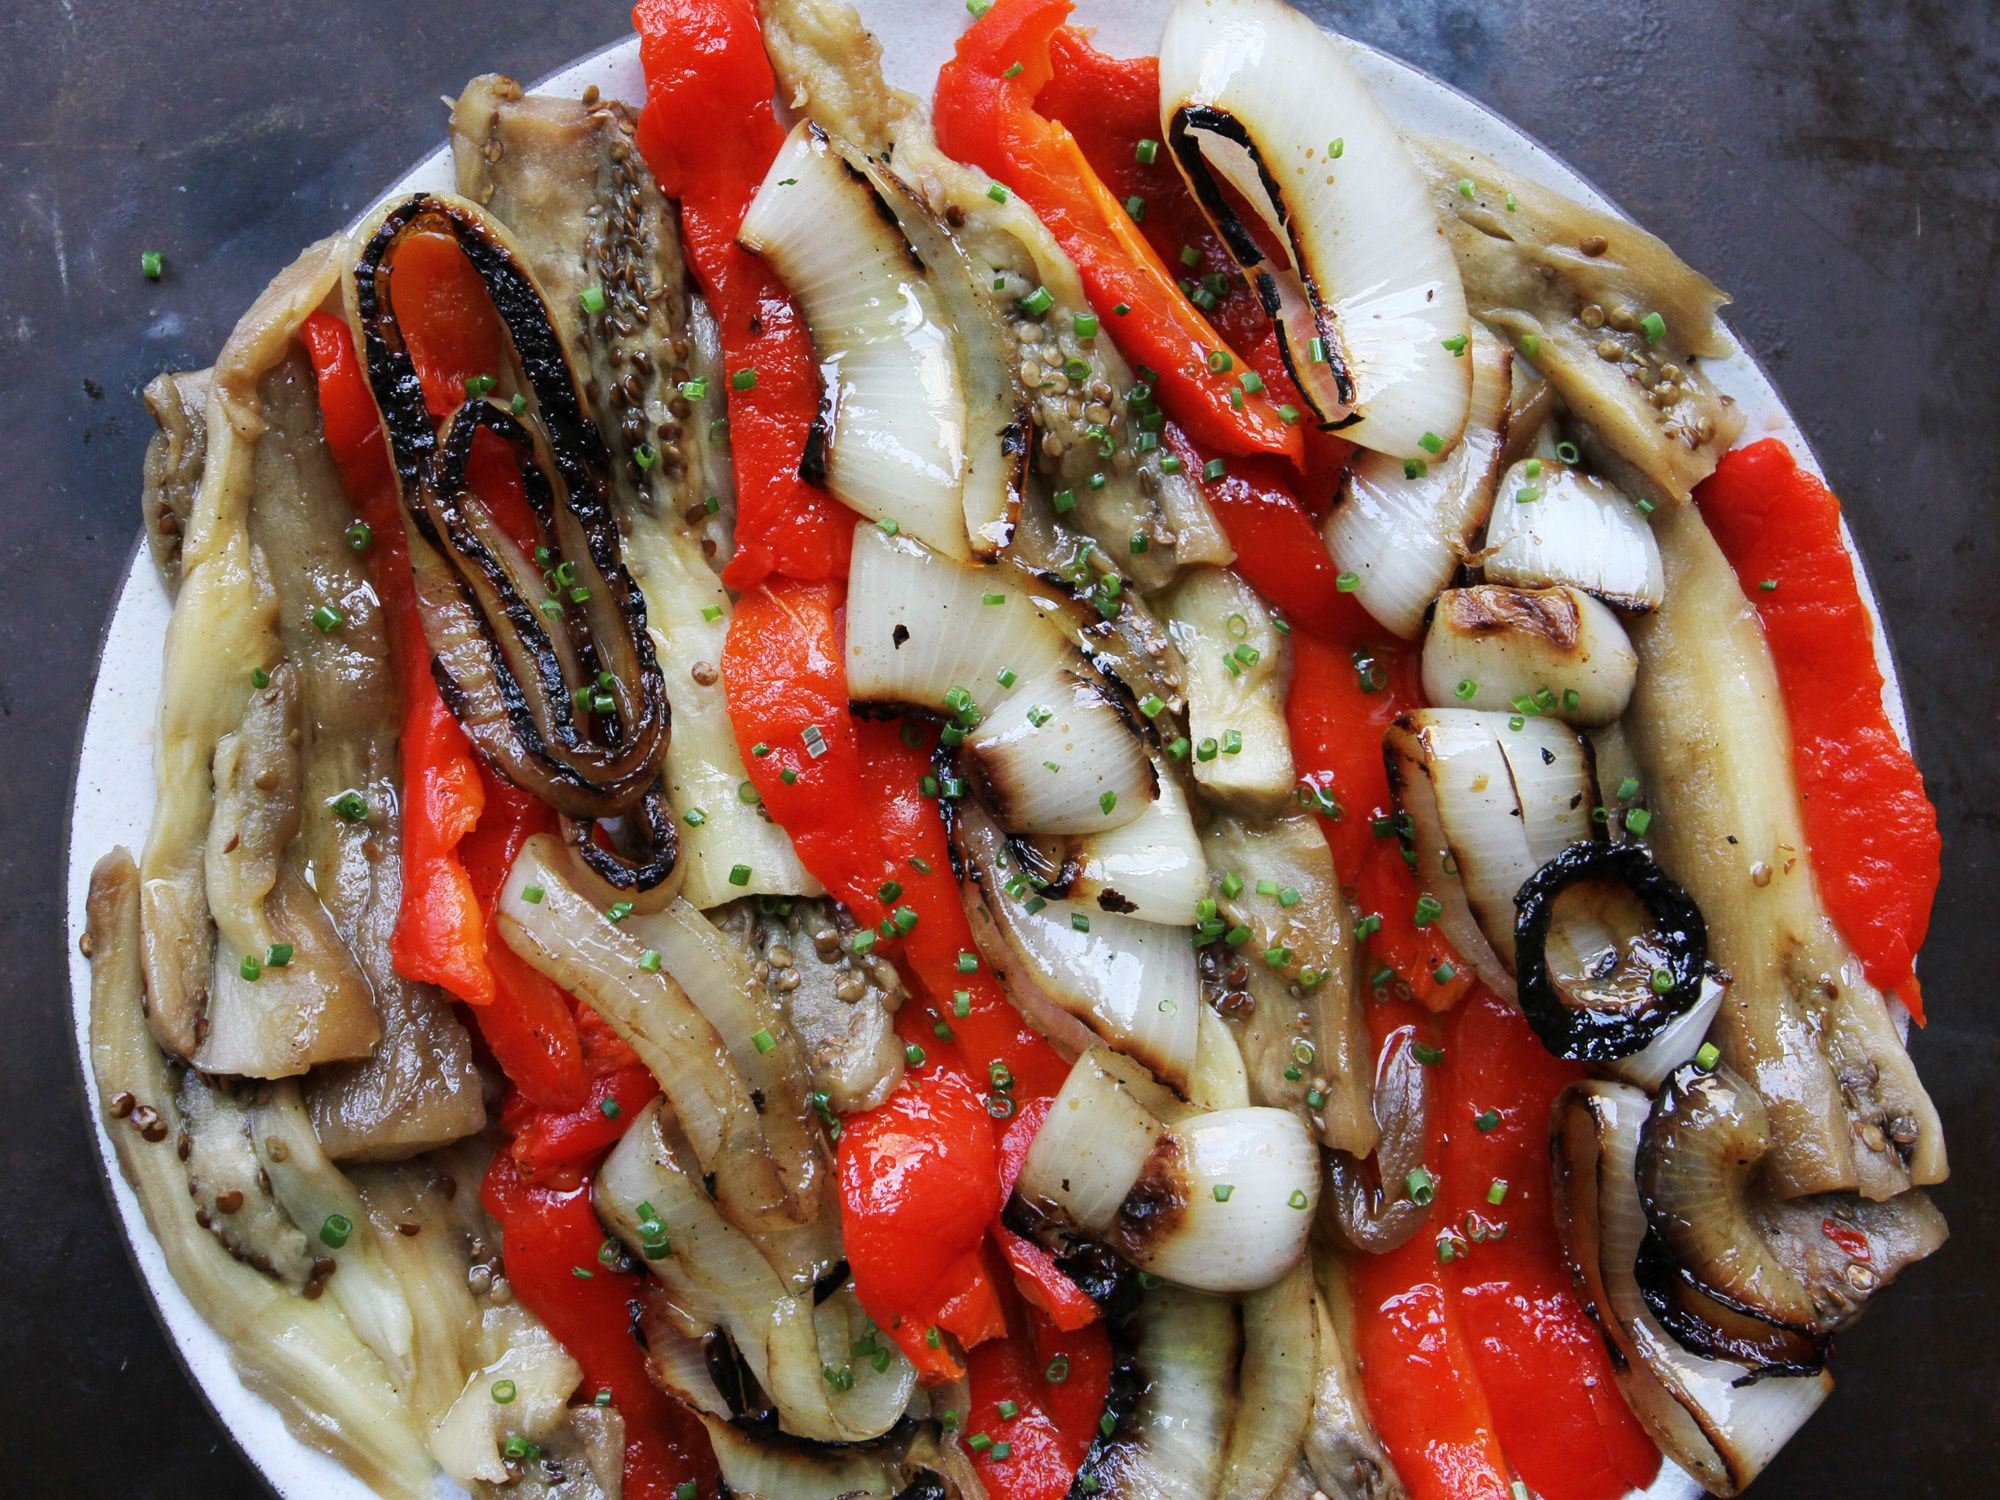 "Akin to Puerto Rican <em>escabeche</em>, roasted, tender vegetables are marinated in a simple sherry vinegar dressing for an easy side dish to grilled fish, roast pork, or tender rib eye steak. Get the recipe for <a href=""https://www.saveur.com/escalivada-catalana-recipe/"">Escalivada Catalana</a>"